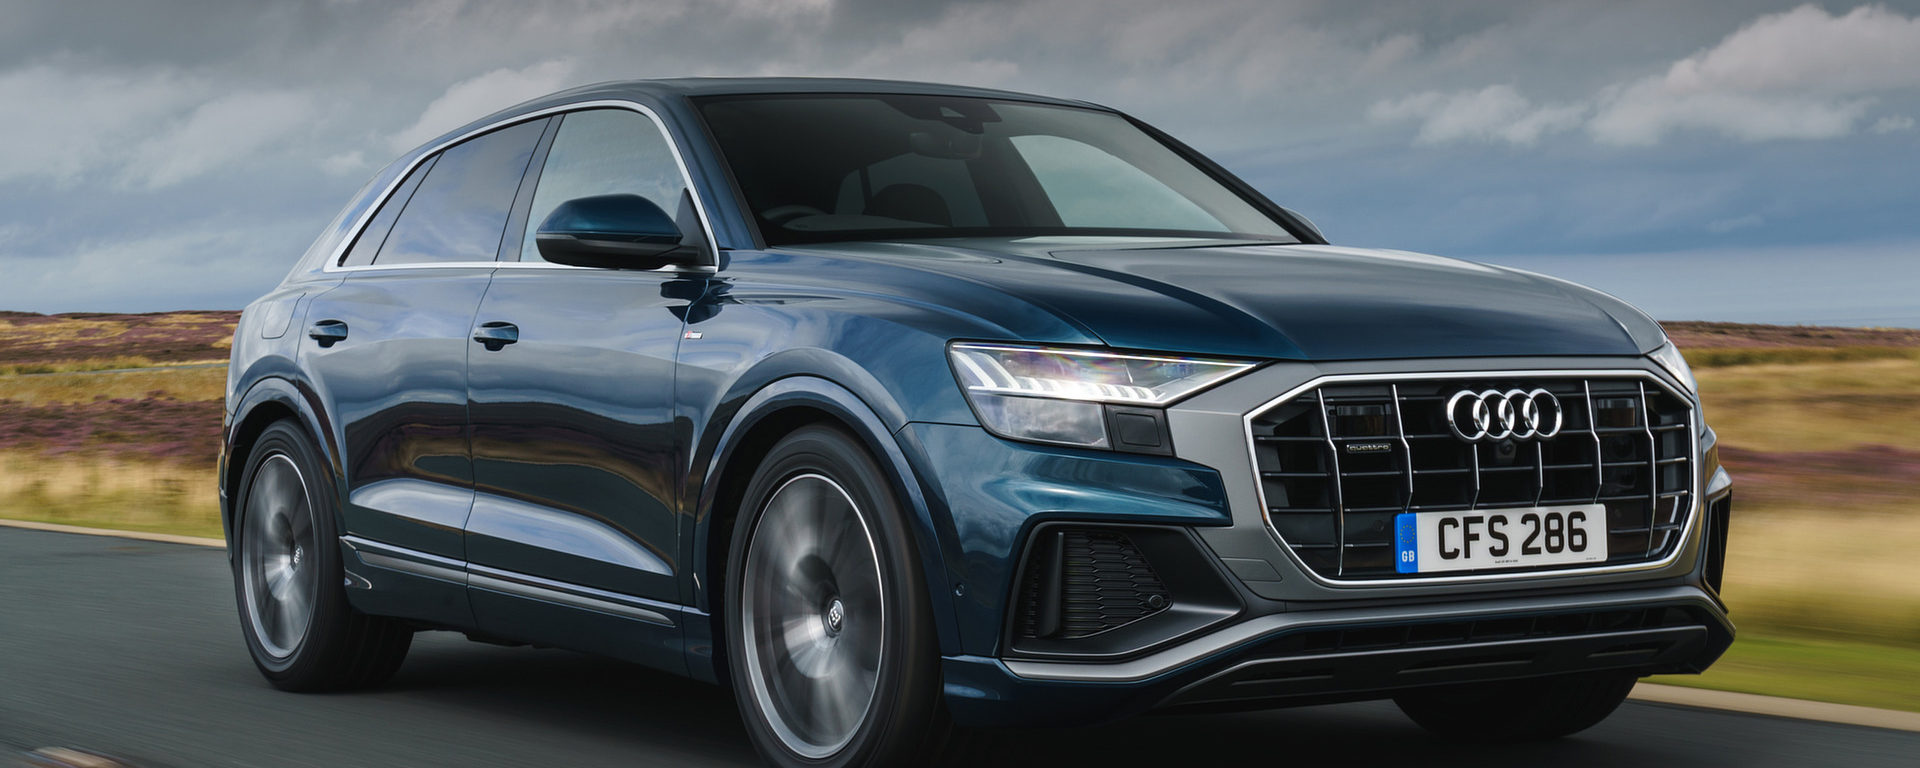 Audi Q8 audio upgrade